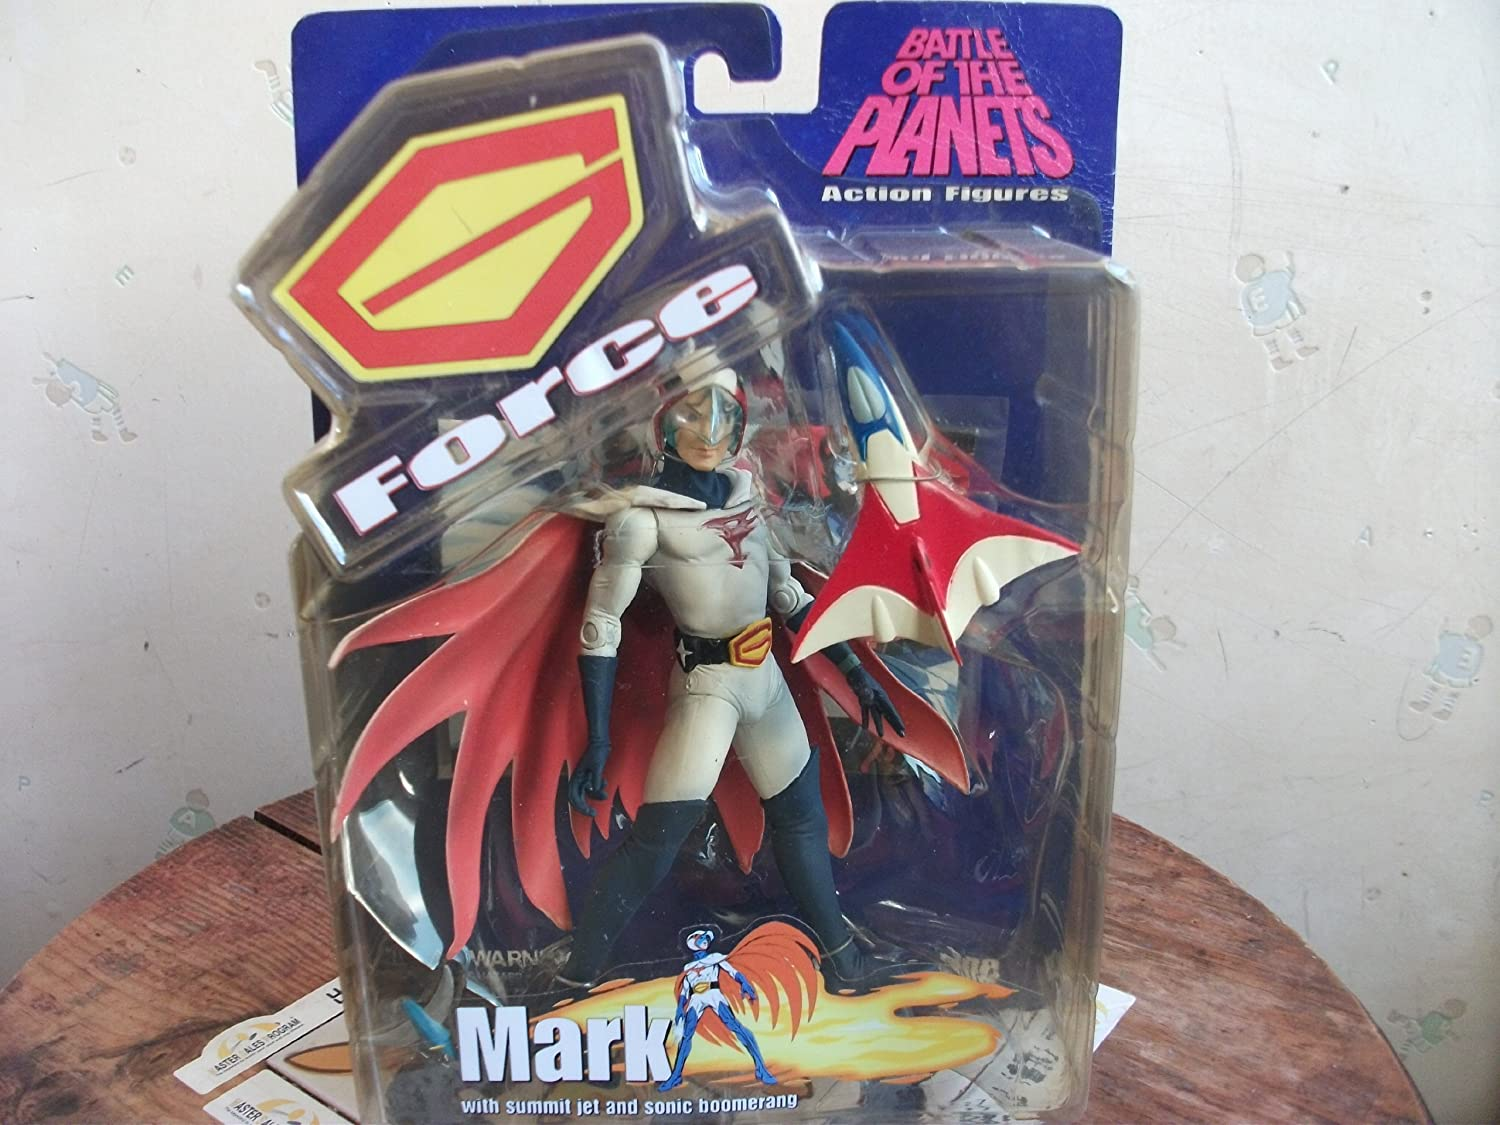 al precio mas bajo G-Force Battle of the Planets Mark Unmasked Acción Figura Figura Figura by Battle of the Planets  bienvenido a elegir